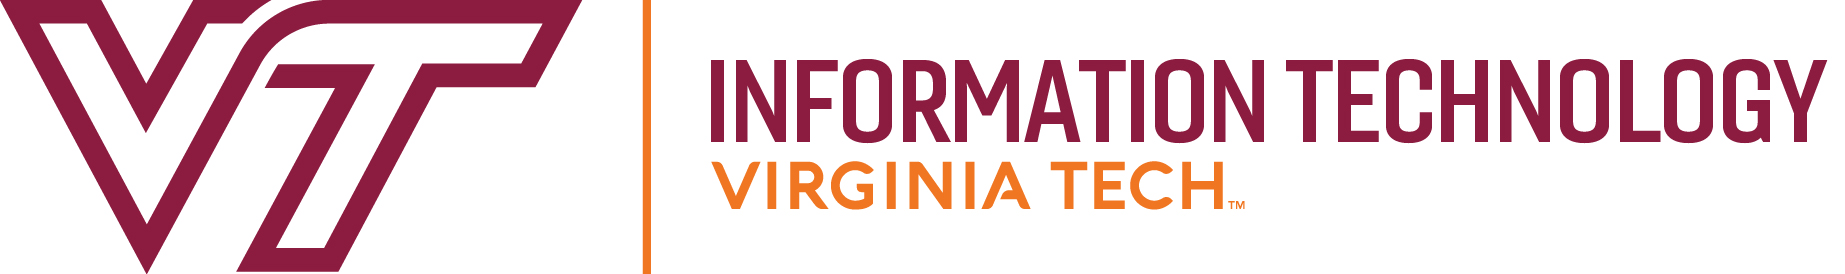 Virginia Tech Information Technology Services logo